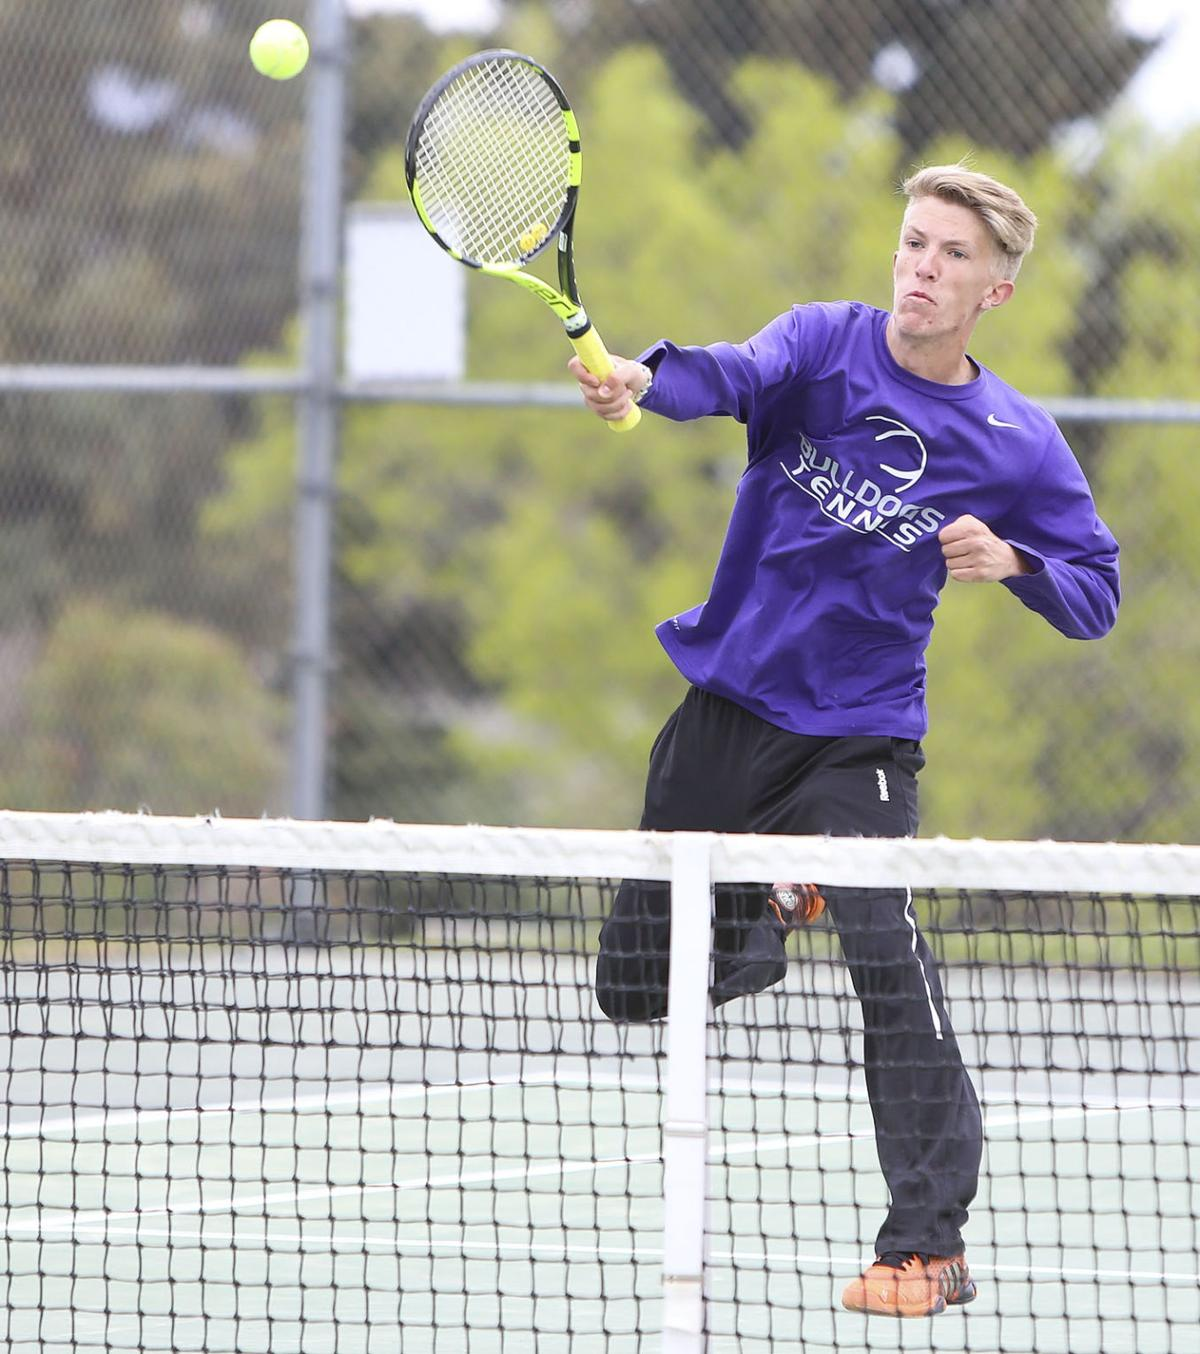 Butte High's Amtmann Takes 2nd At Divisional Tennis